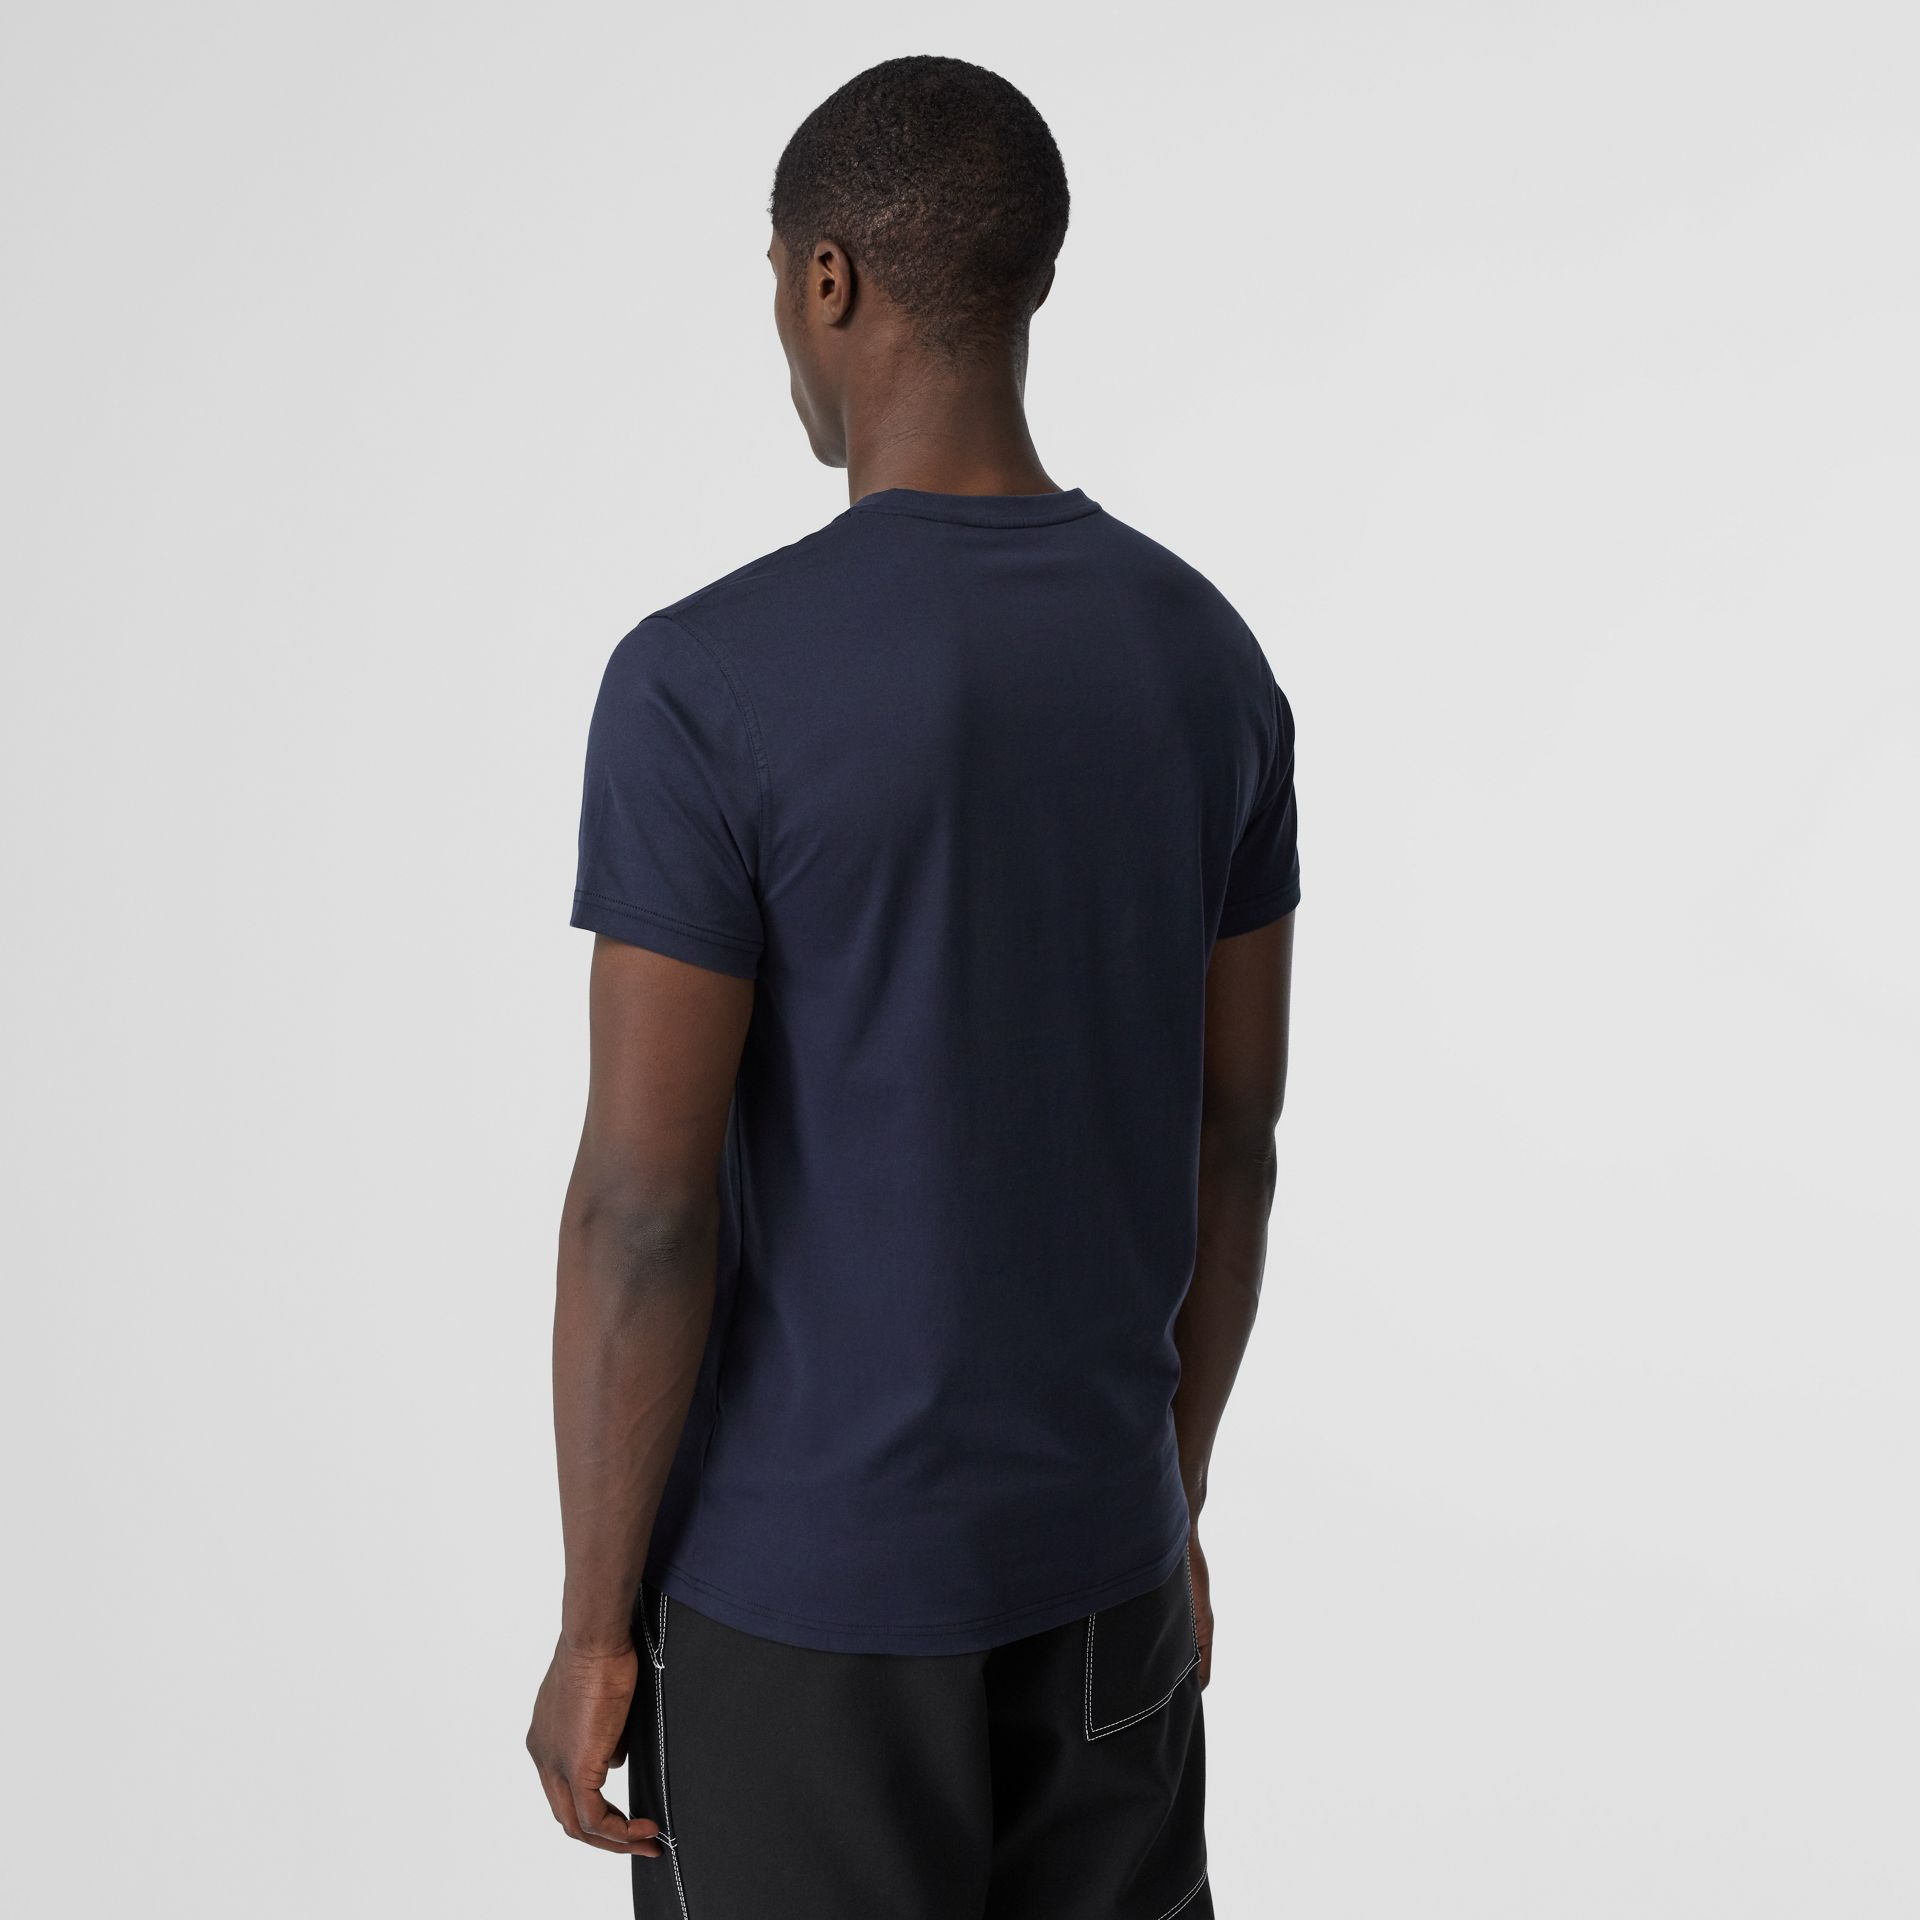 Monogram Motif Cotton V-neck T-shirt in Navy - Men | Burberry - gallery image 2